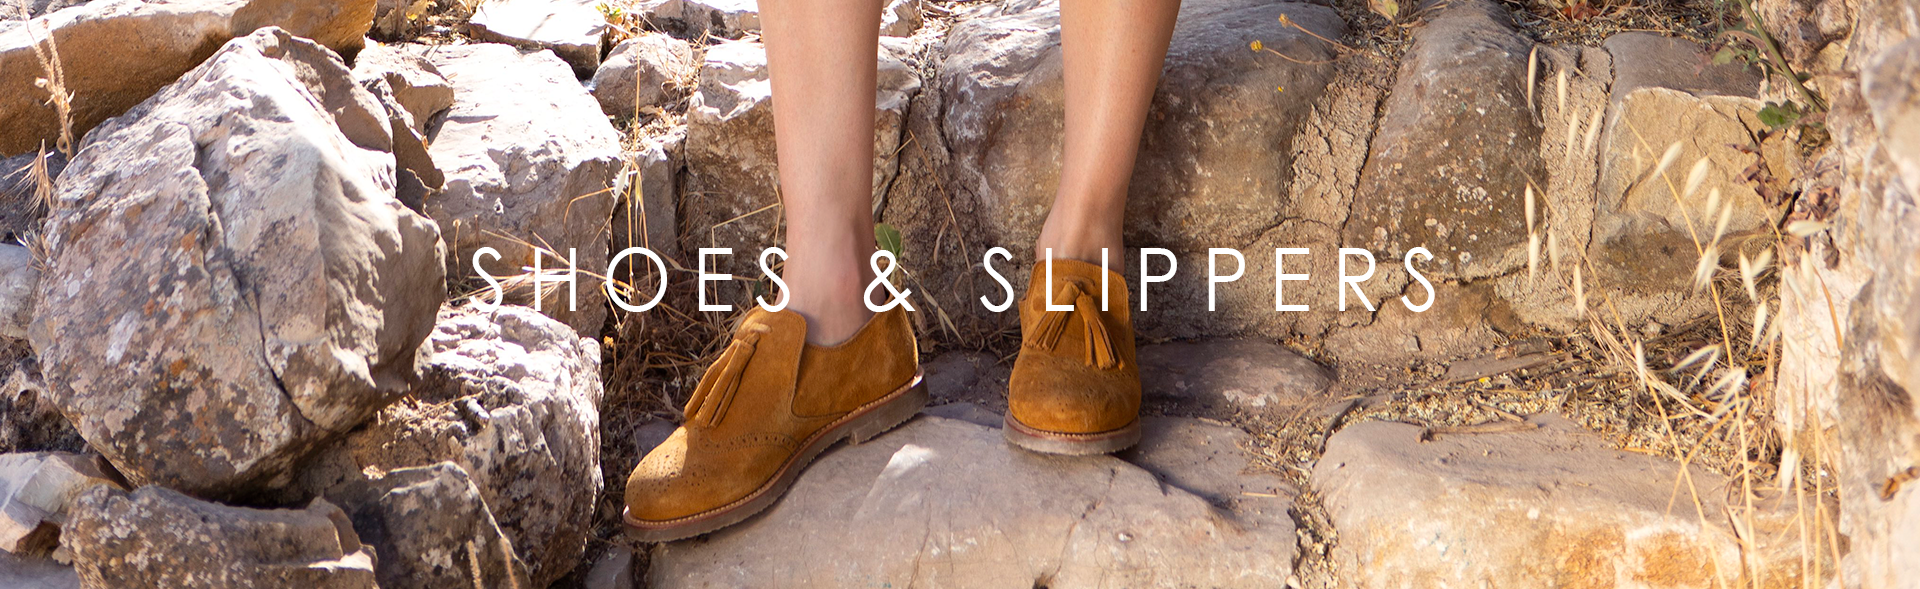 SHOES & SLIPPERS